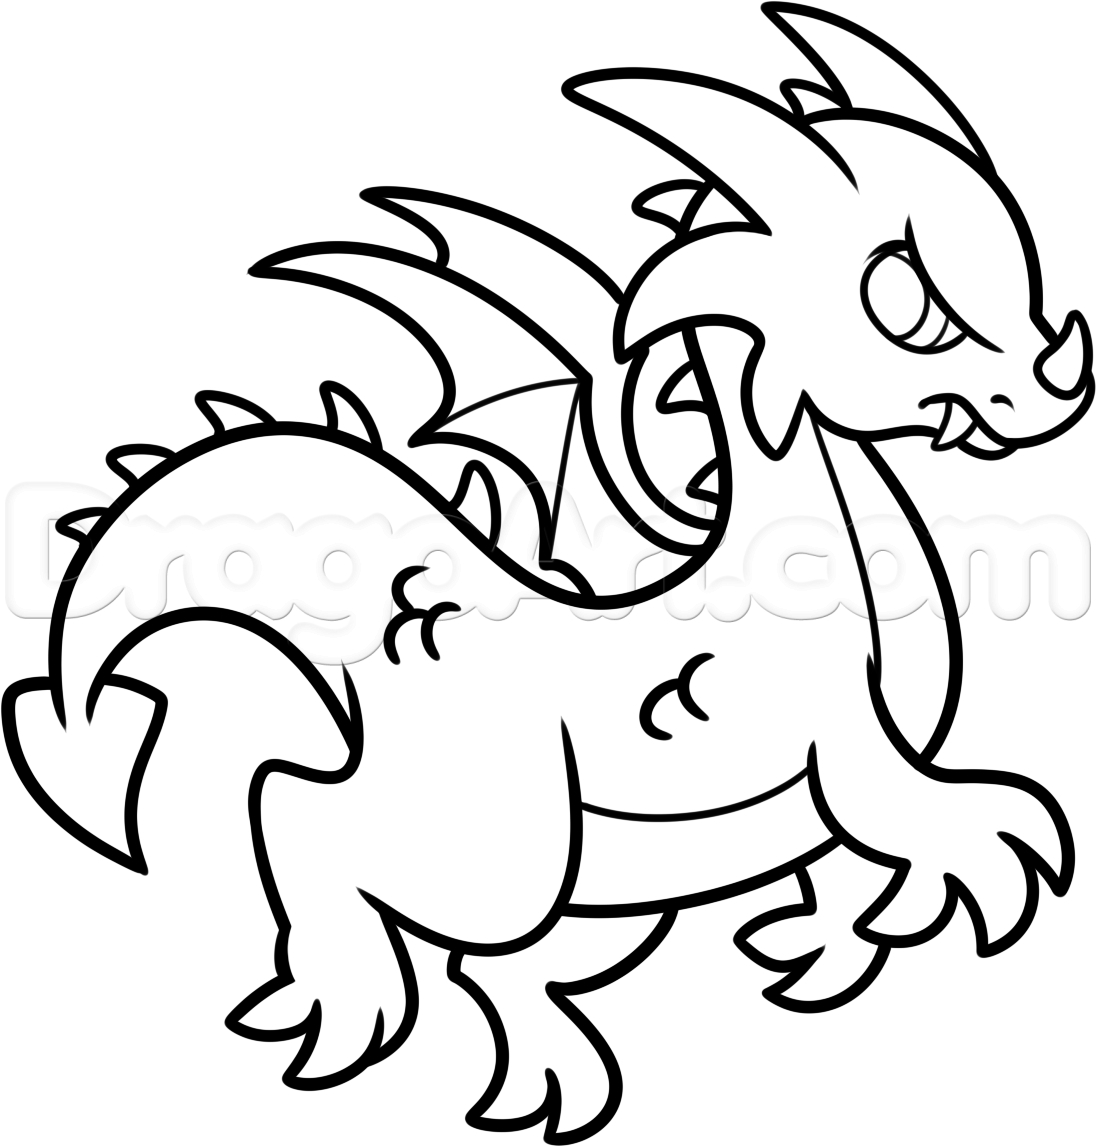 1096x1146 Simple Drawing Of A Dragon How To Draw A Simple Dragon Step 8